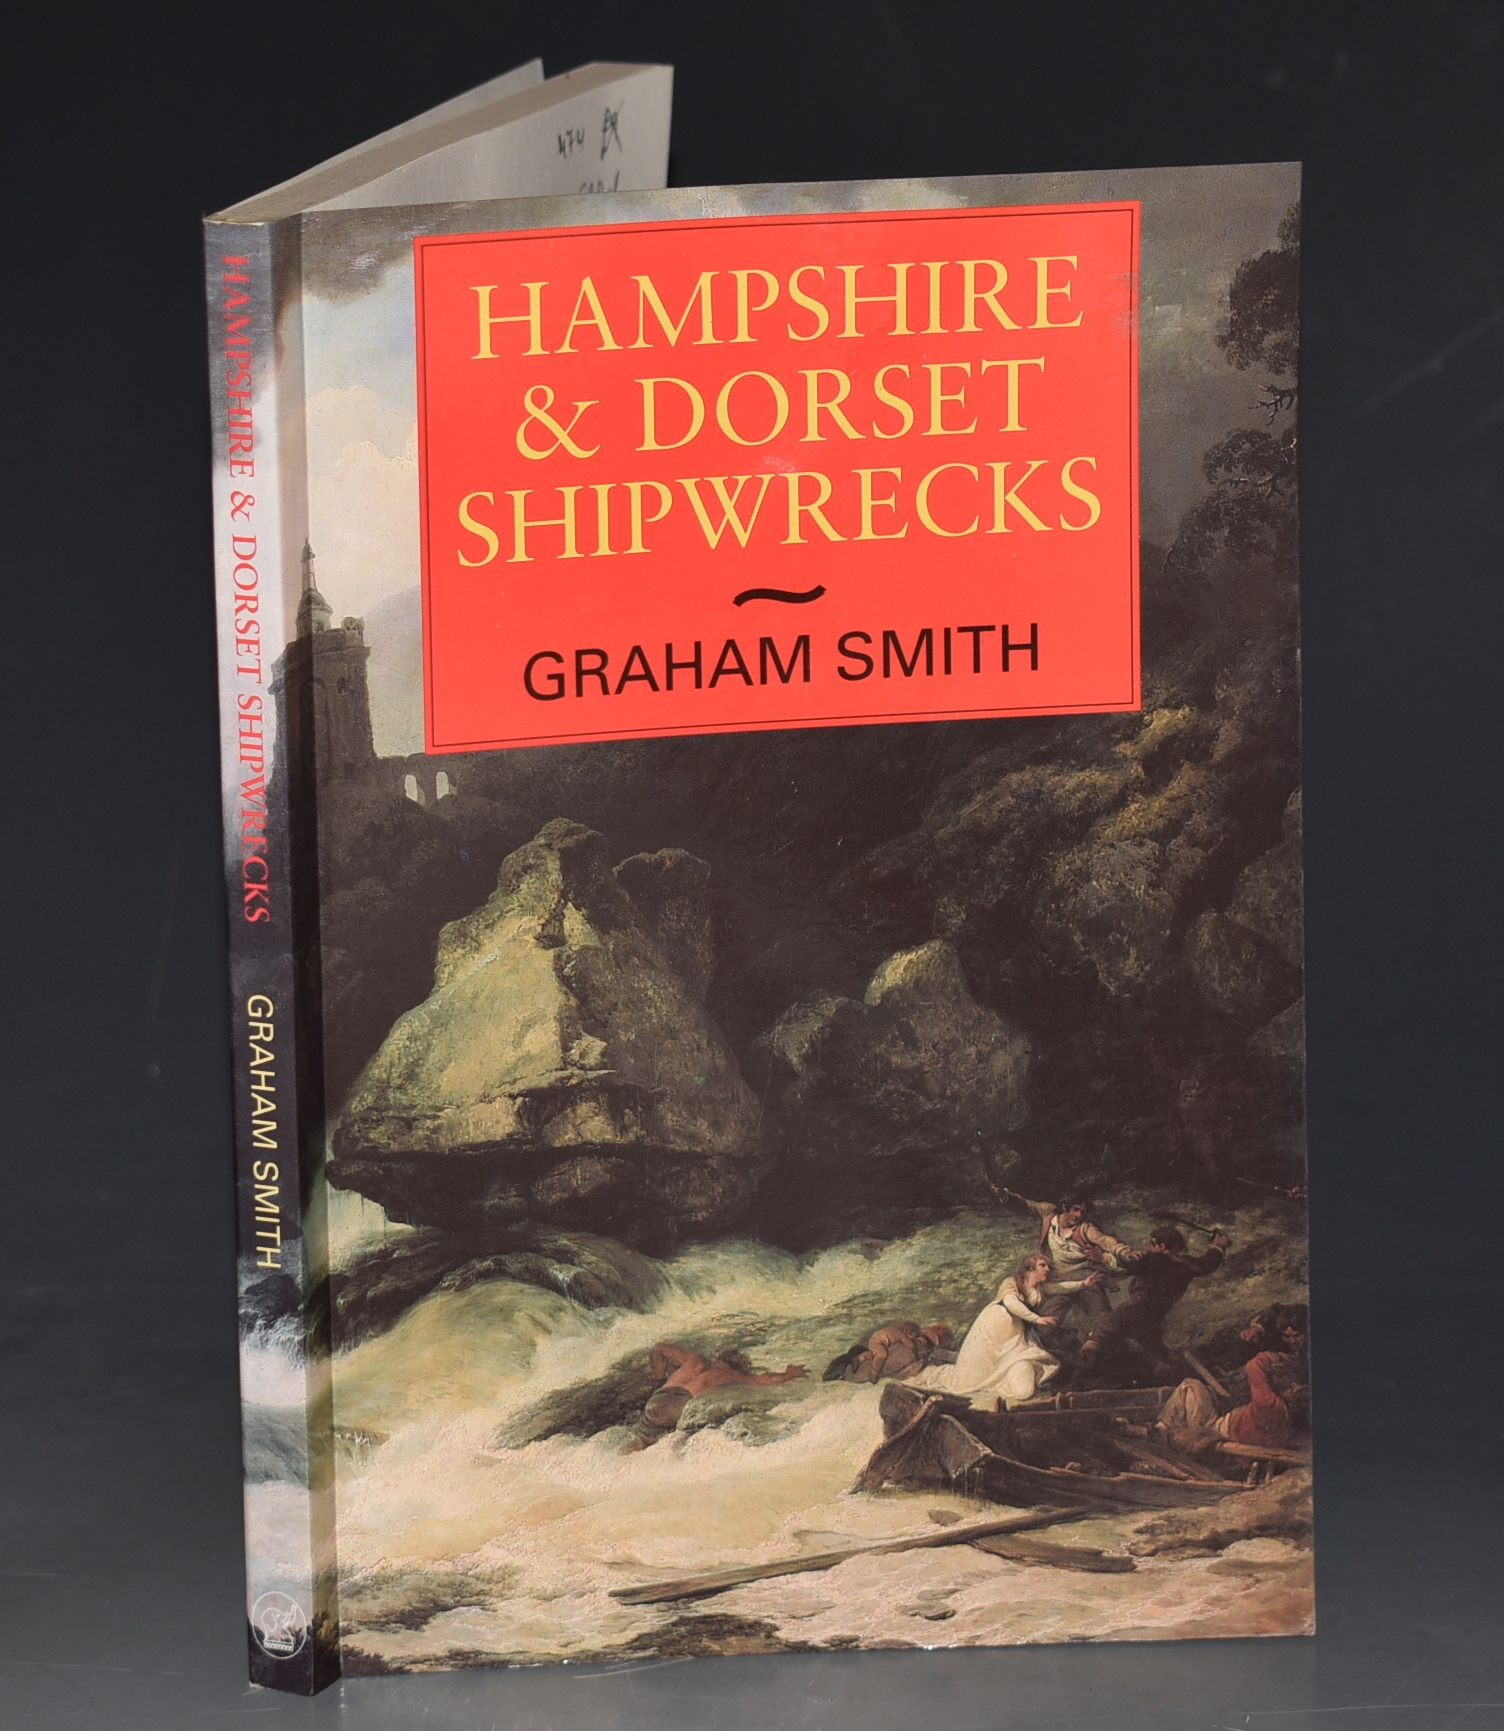 Image for Hampshire & Dorset Shipwrecks.